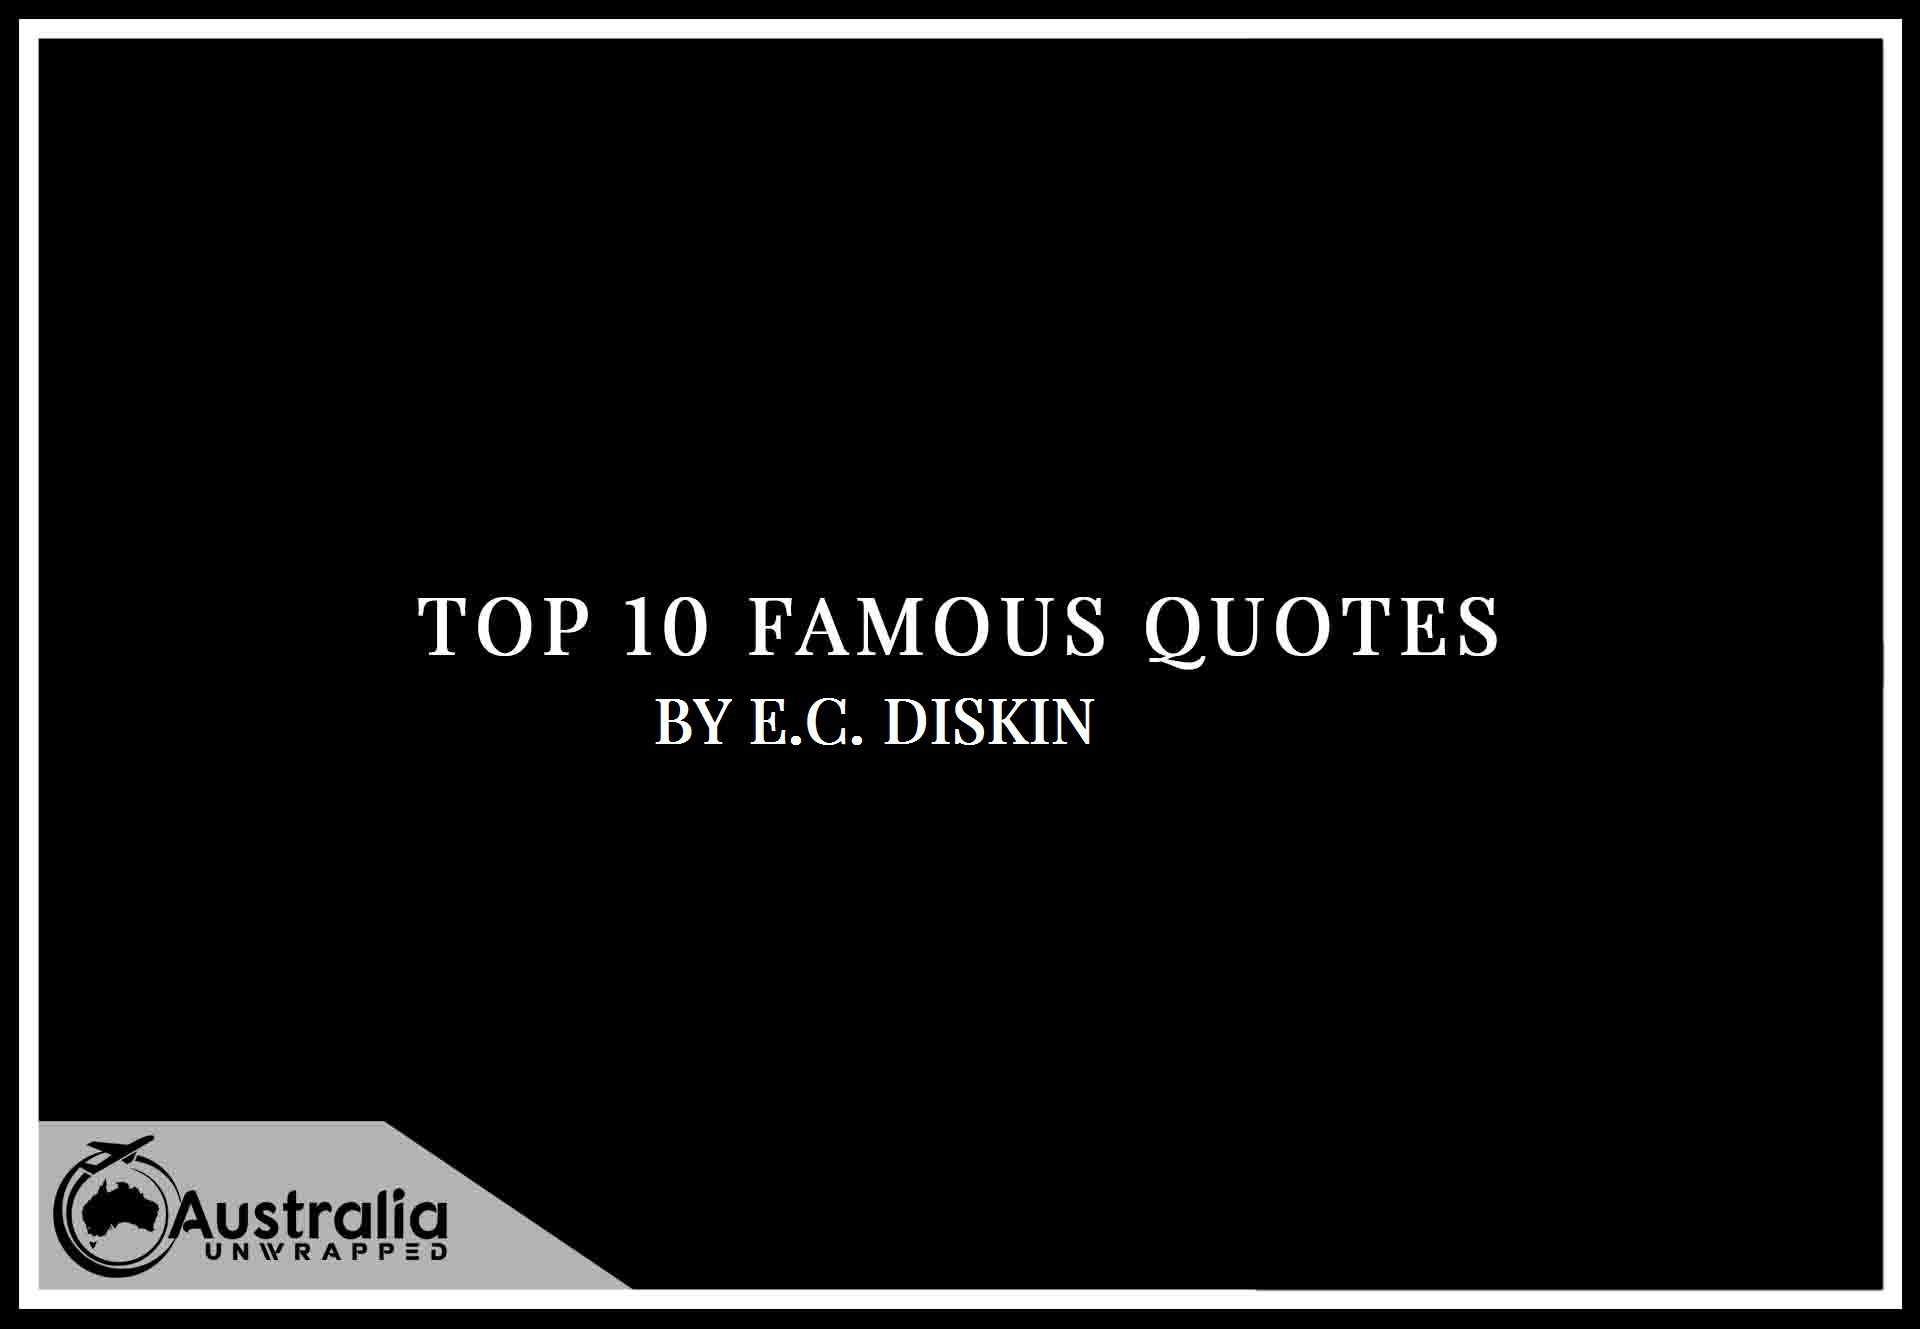 E.C. Diskin's Top 10 Popular and Famous Quotes